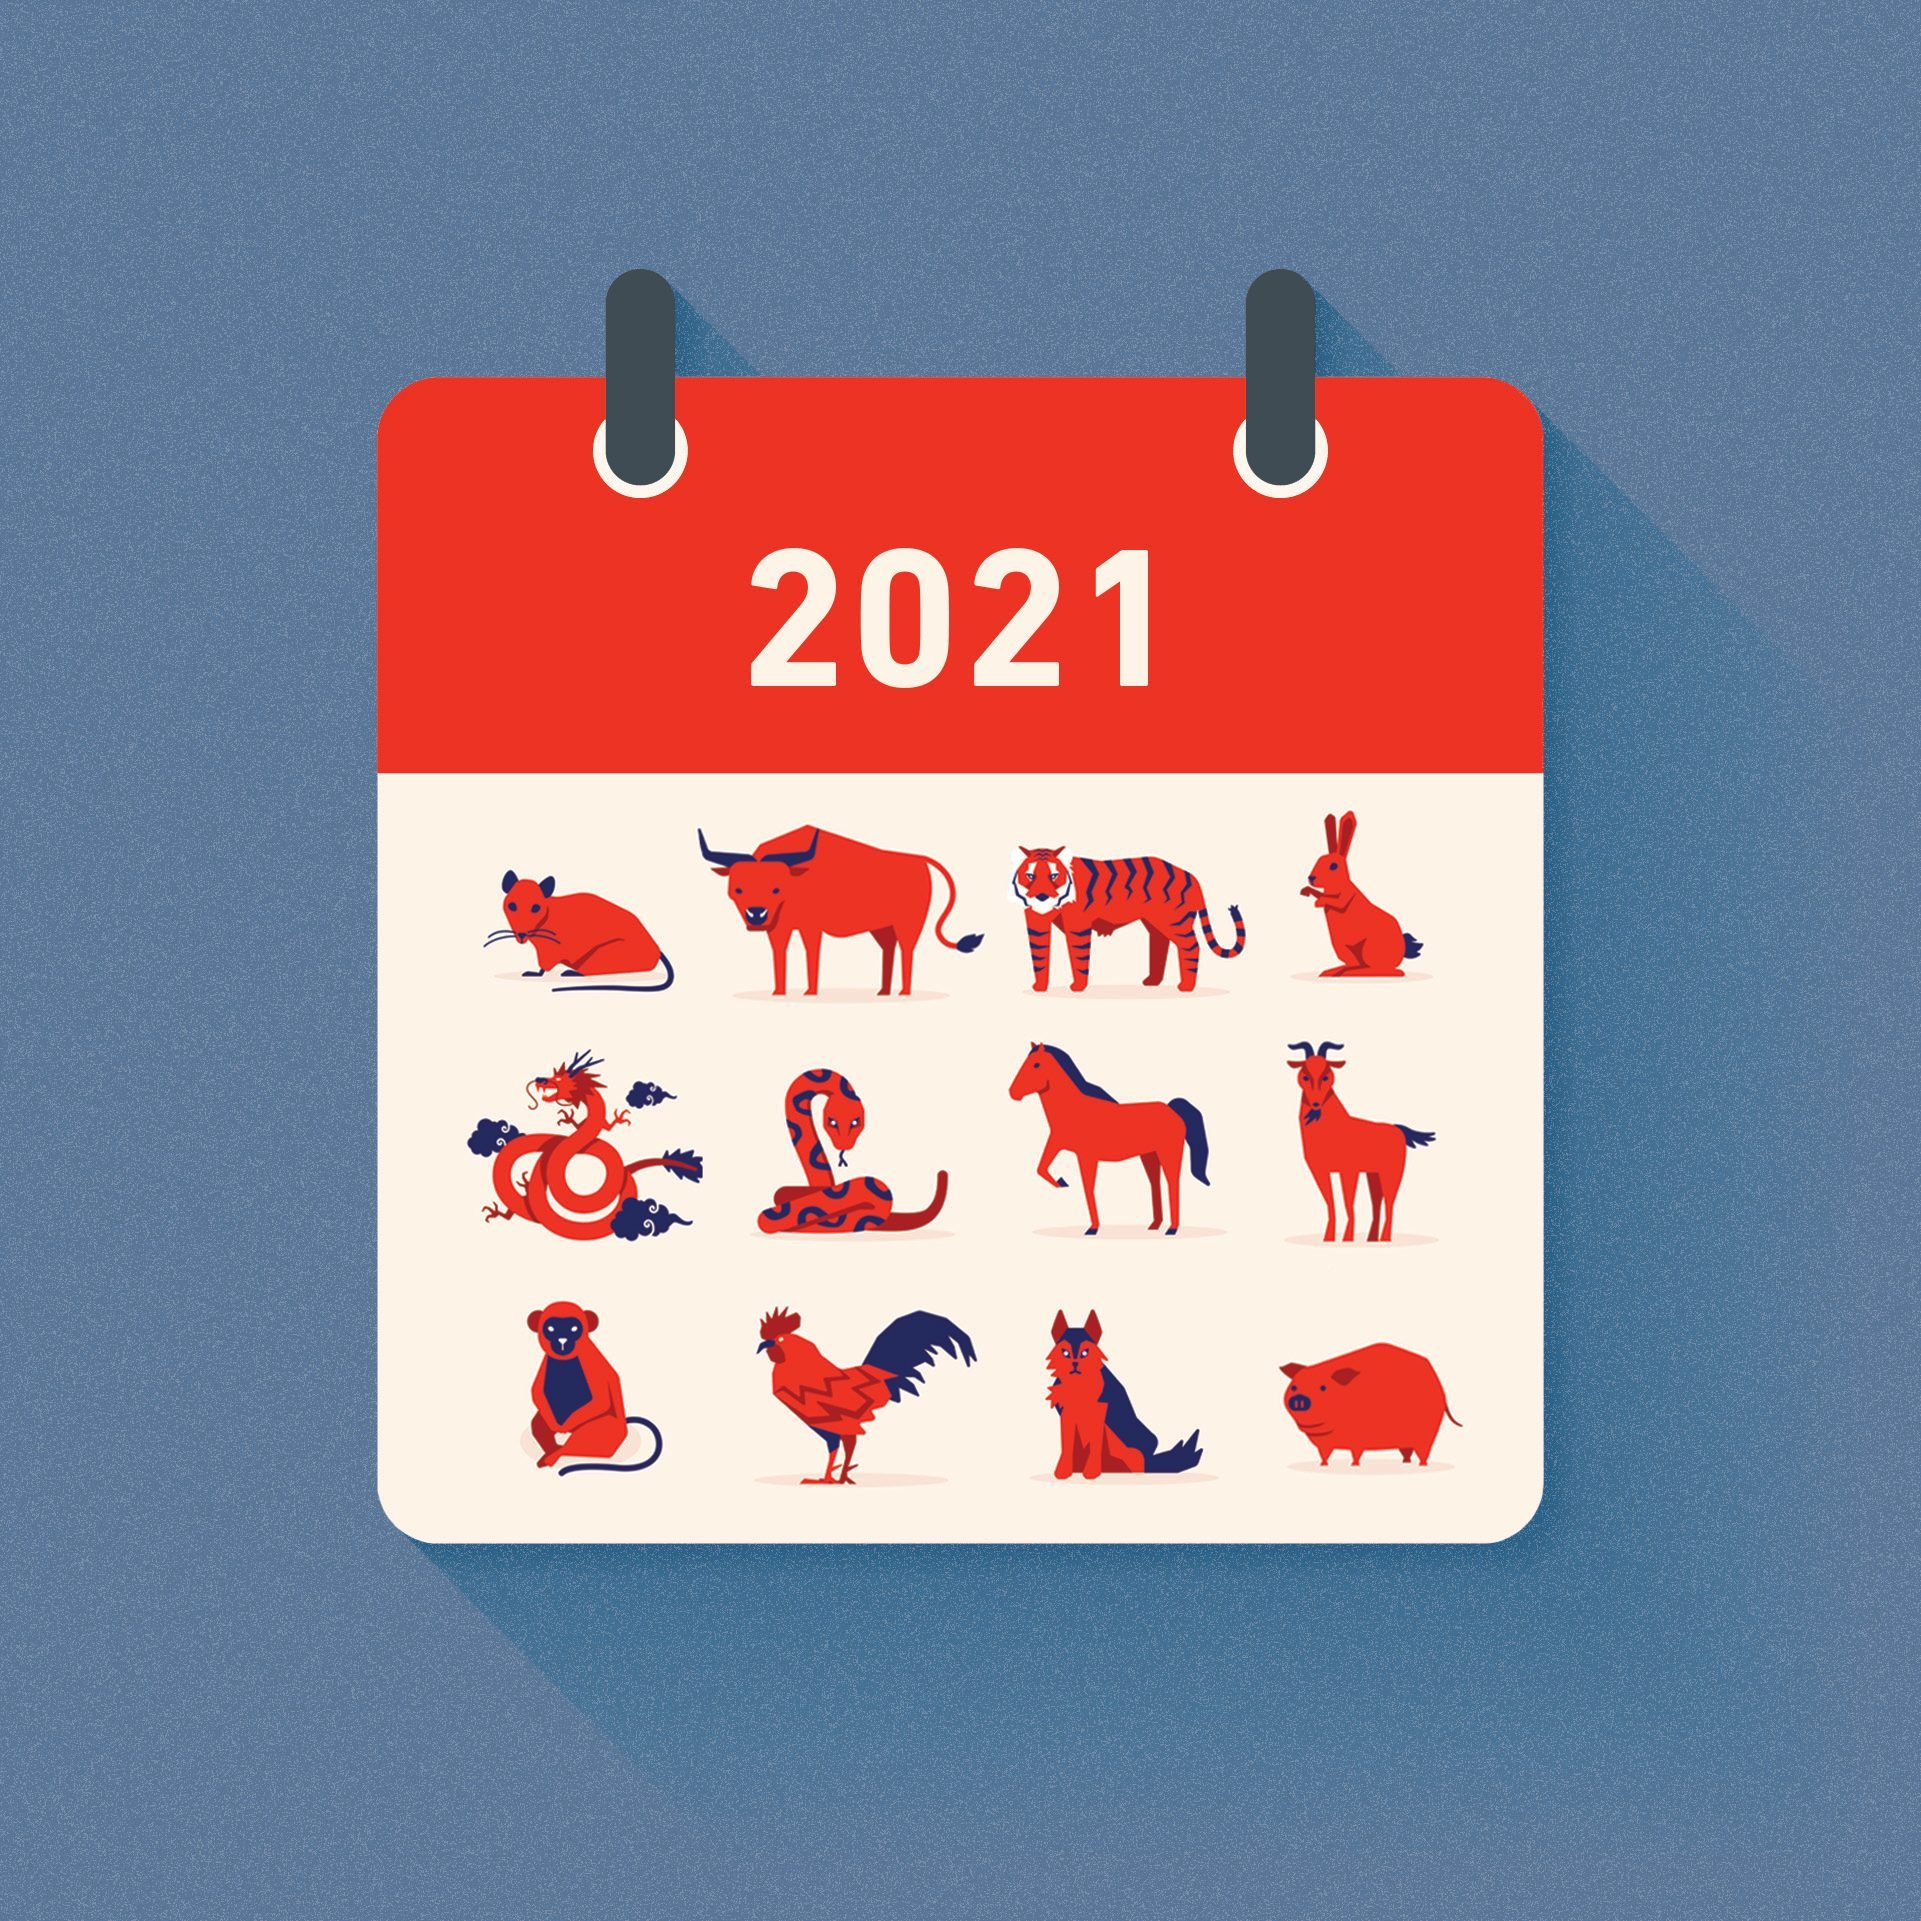 Chinese Calendar 2021 Animal What 2021 Has in Store for You, Based on Your Chinese Zodiac Sign